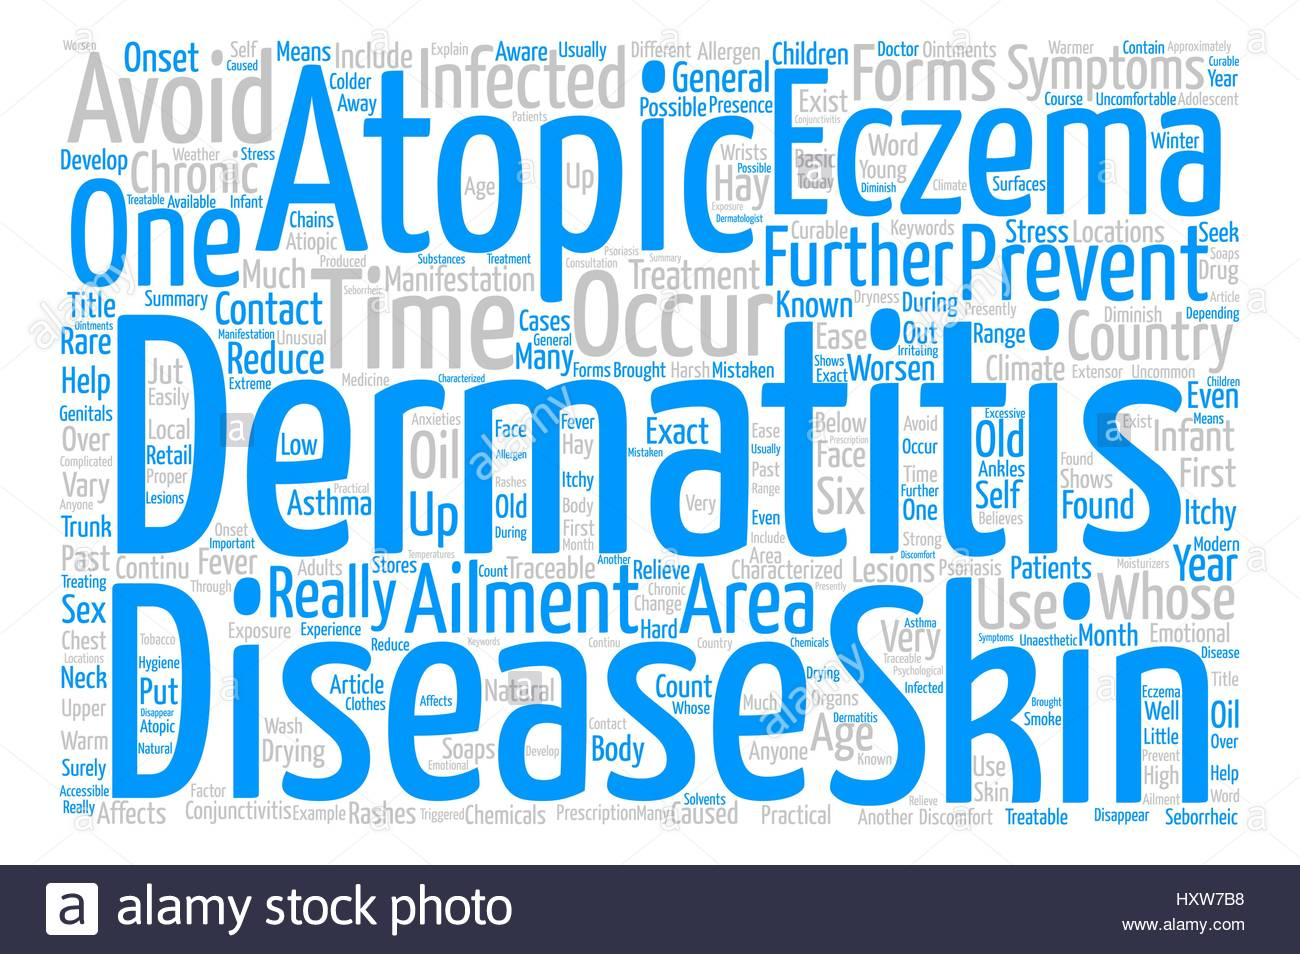 Eczema Or Atopic Dermatitis Anyone text background word cloud 1300x954